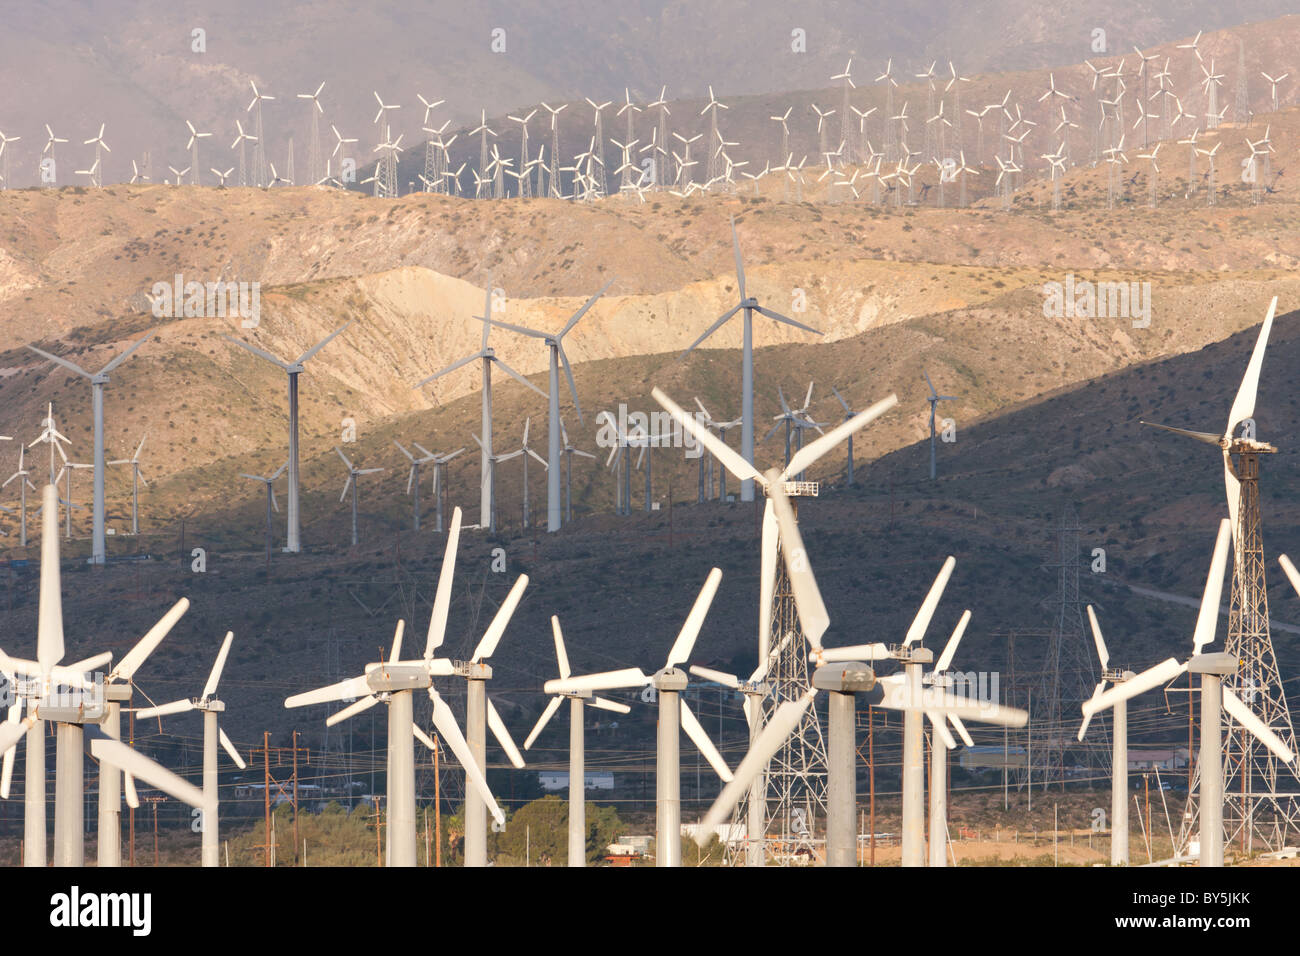 Wind turbines generating electricity on the San Gorgonio Pass Wind Farm serving Palm Springs, California. - Stock Image